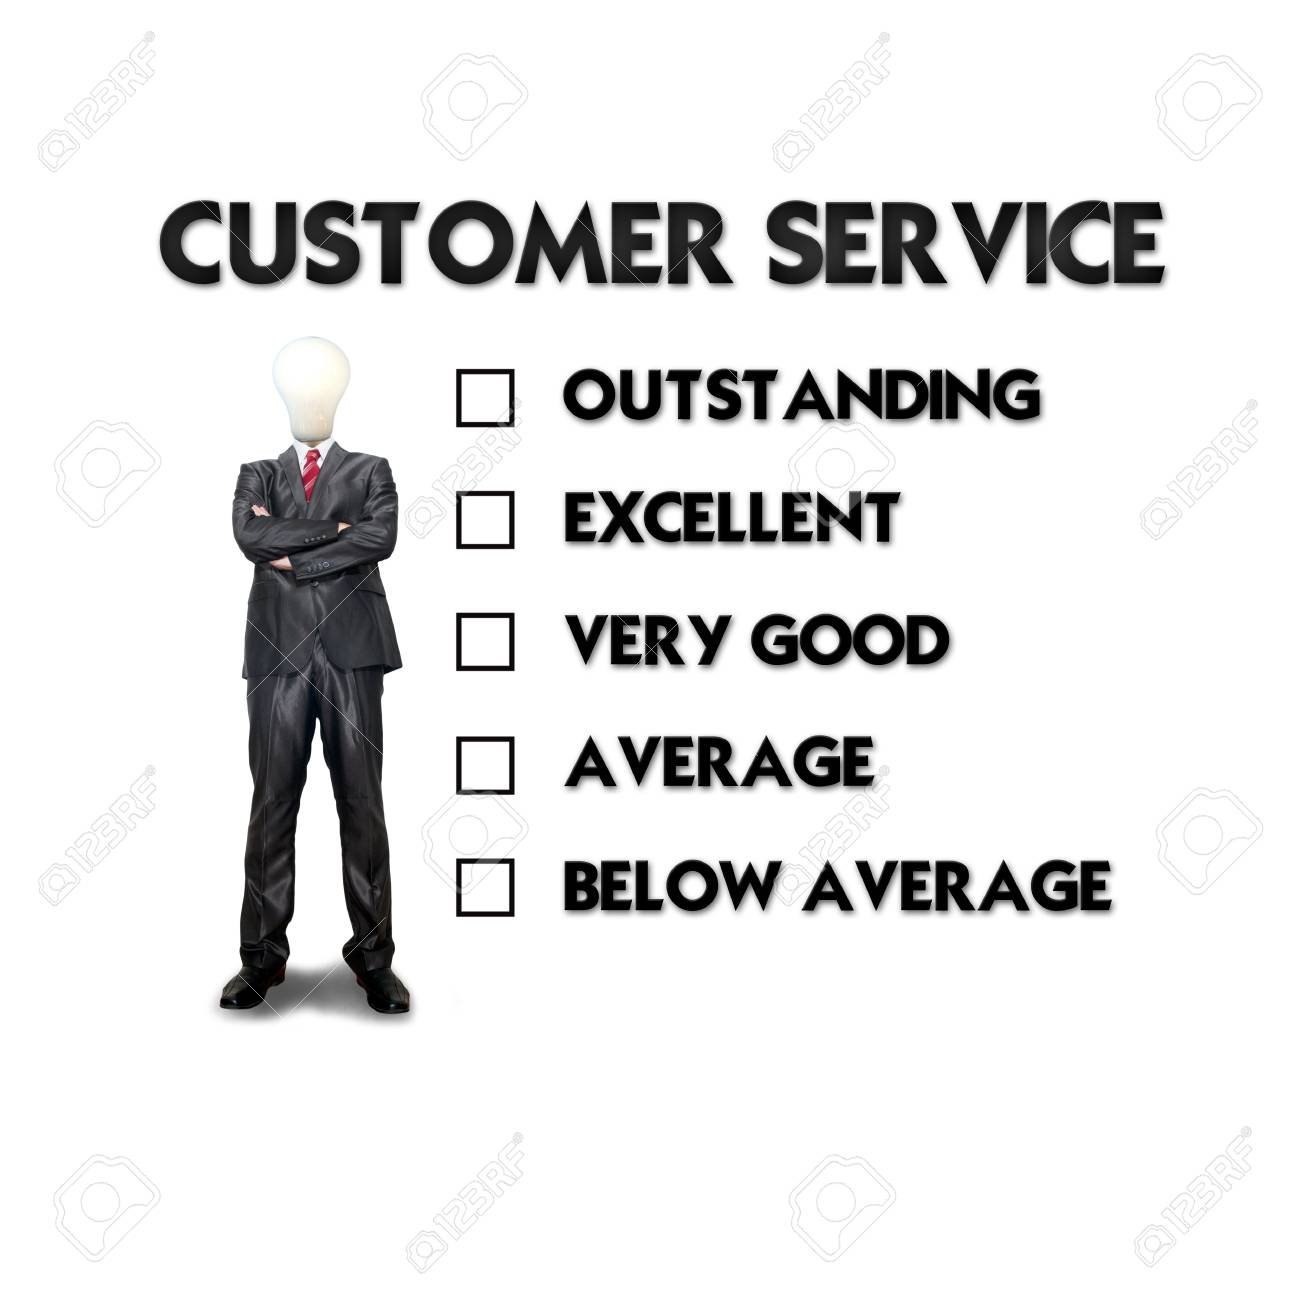 Customer service evaluation form with business man selecting the choice Stock Photo - 12351779